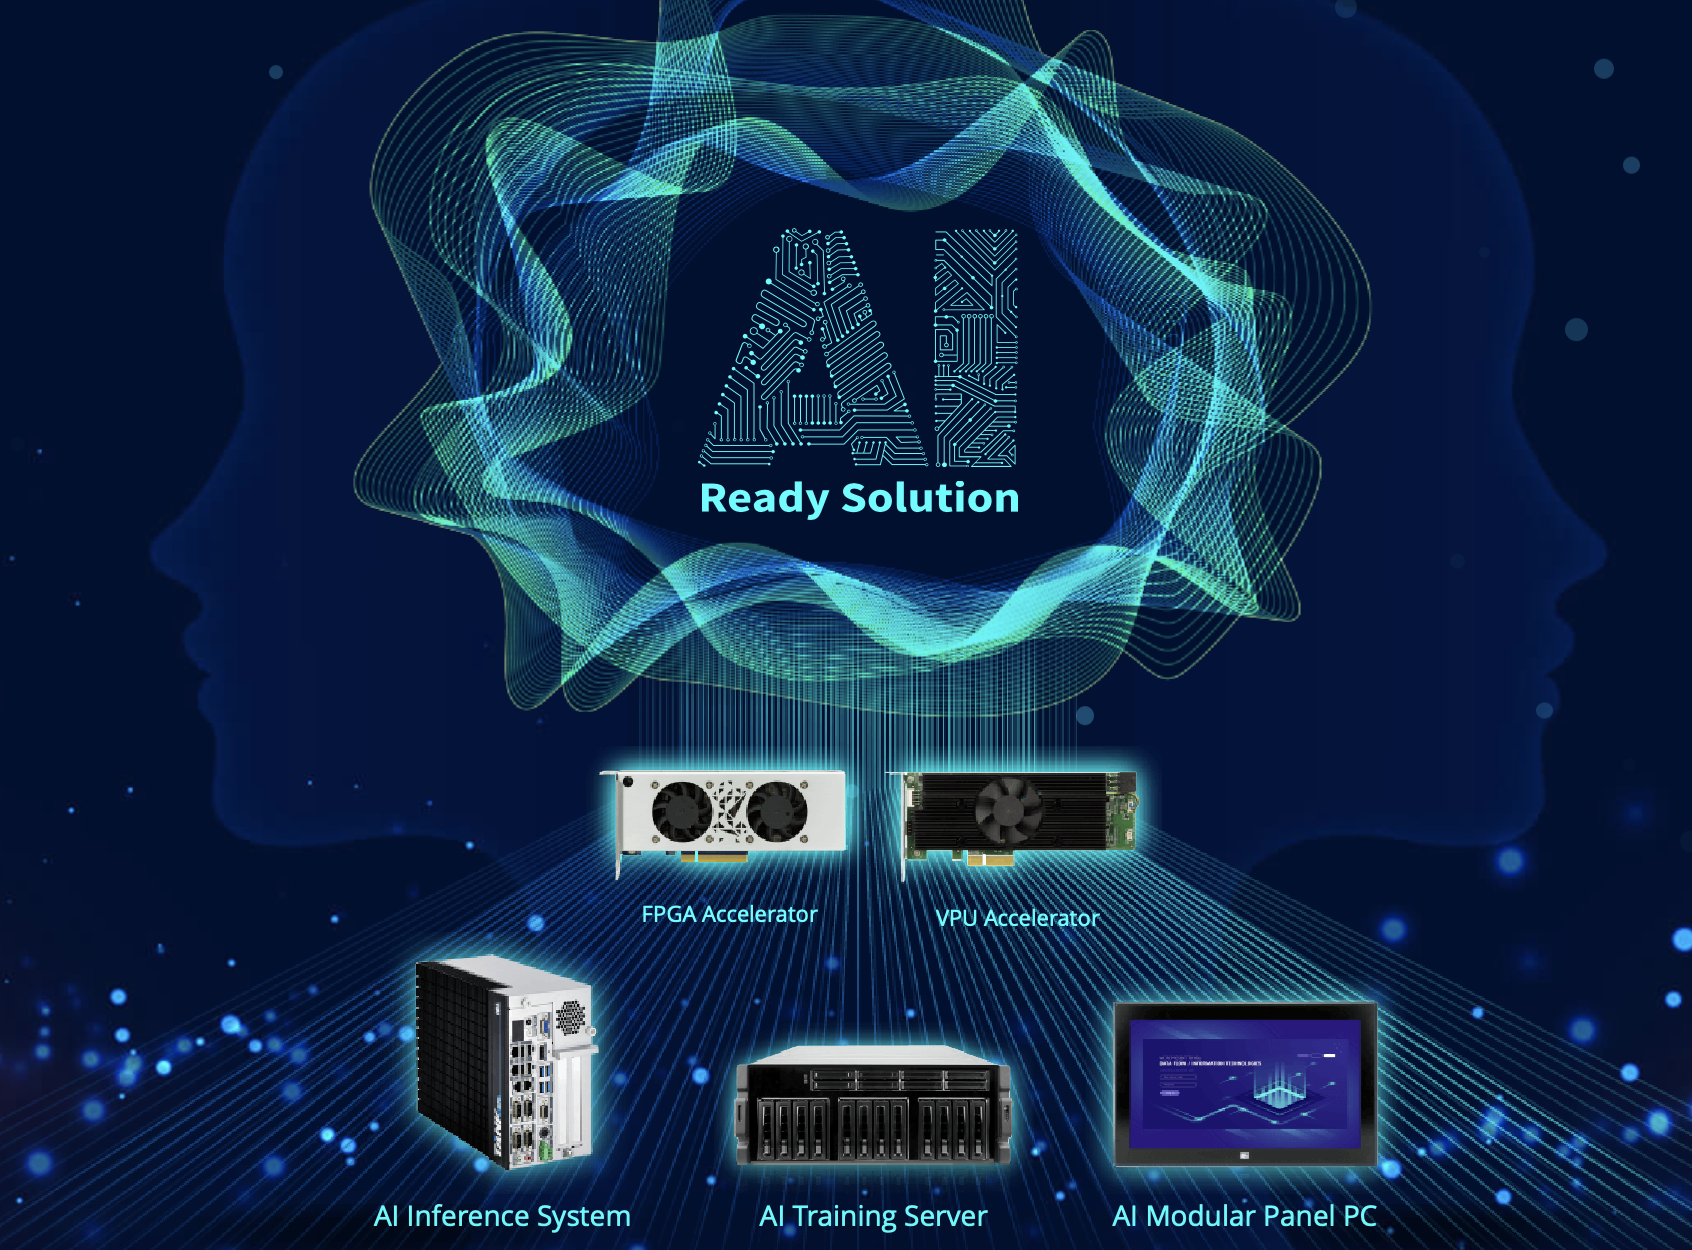 IEI AI Ready Solution Accelerates Your AI Initiative